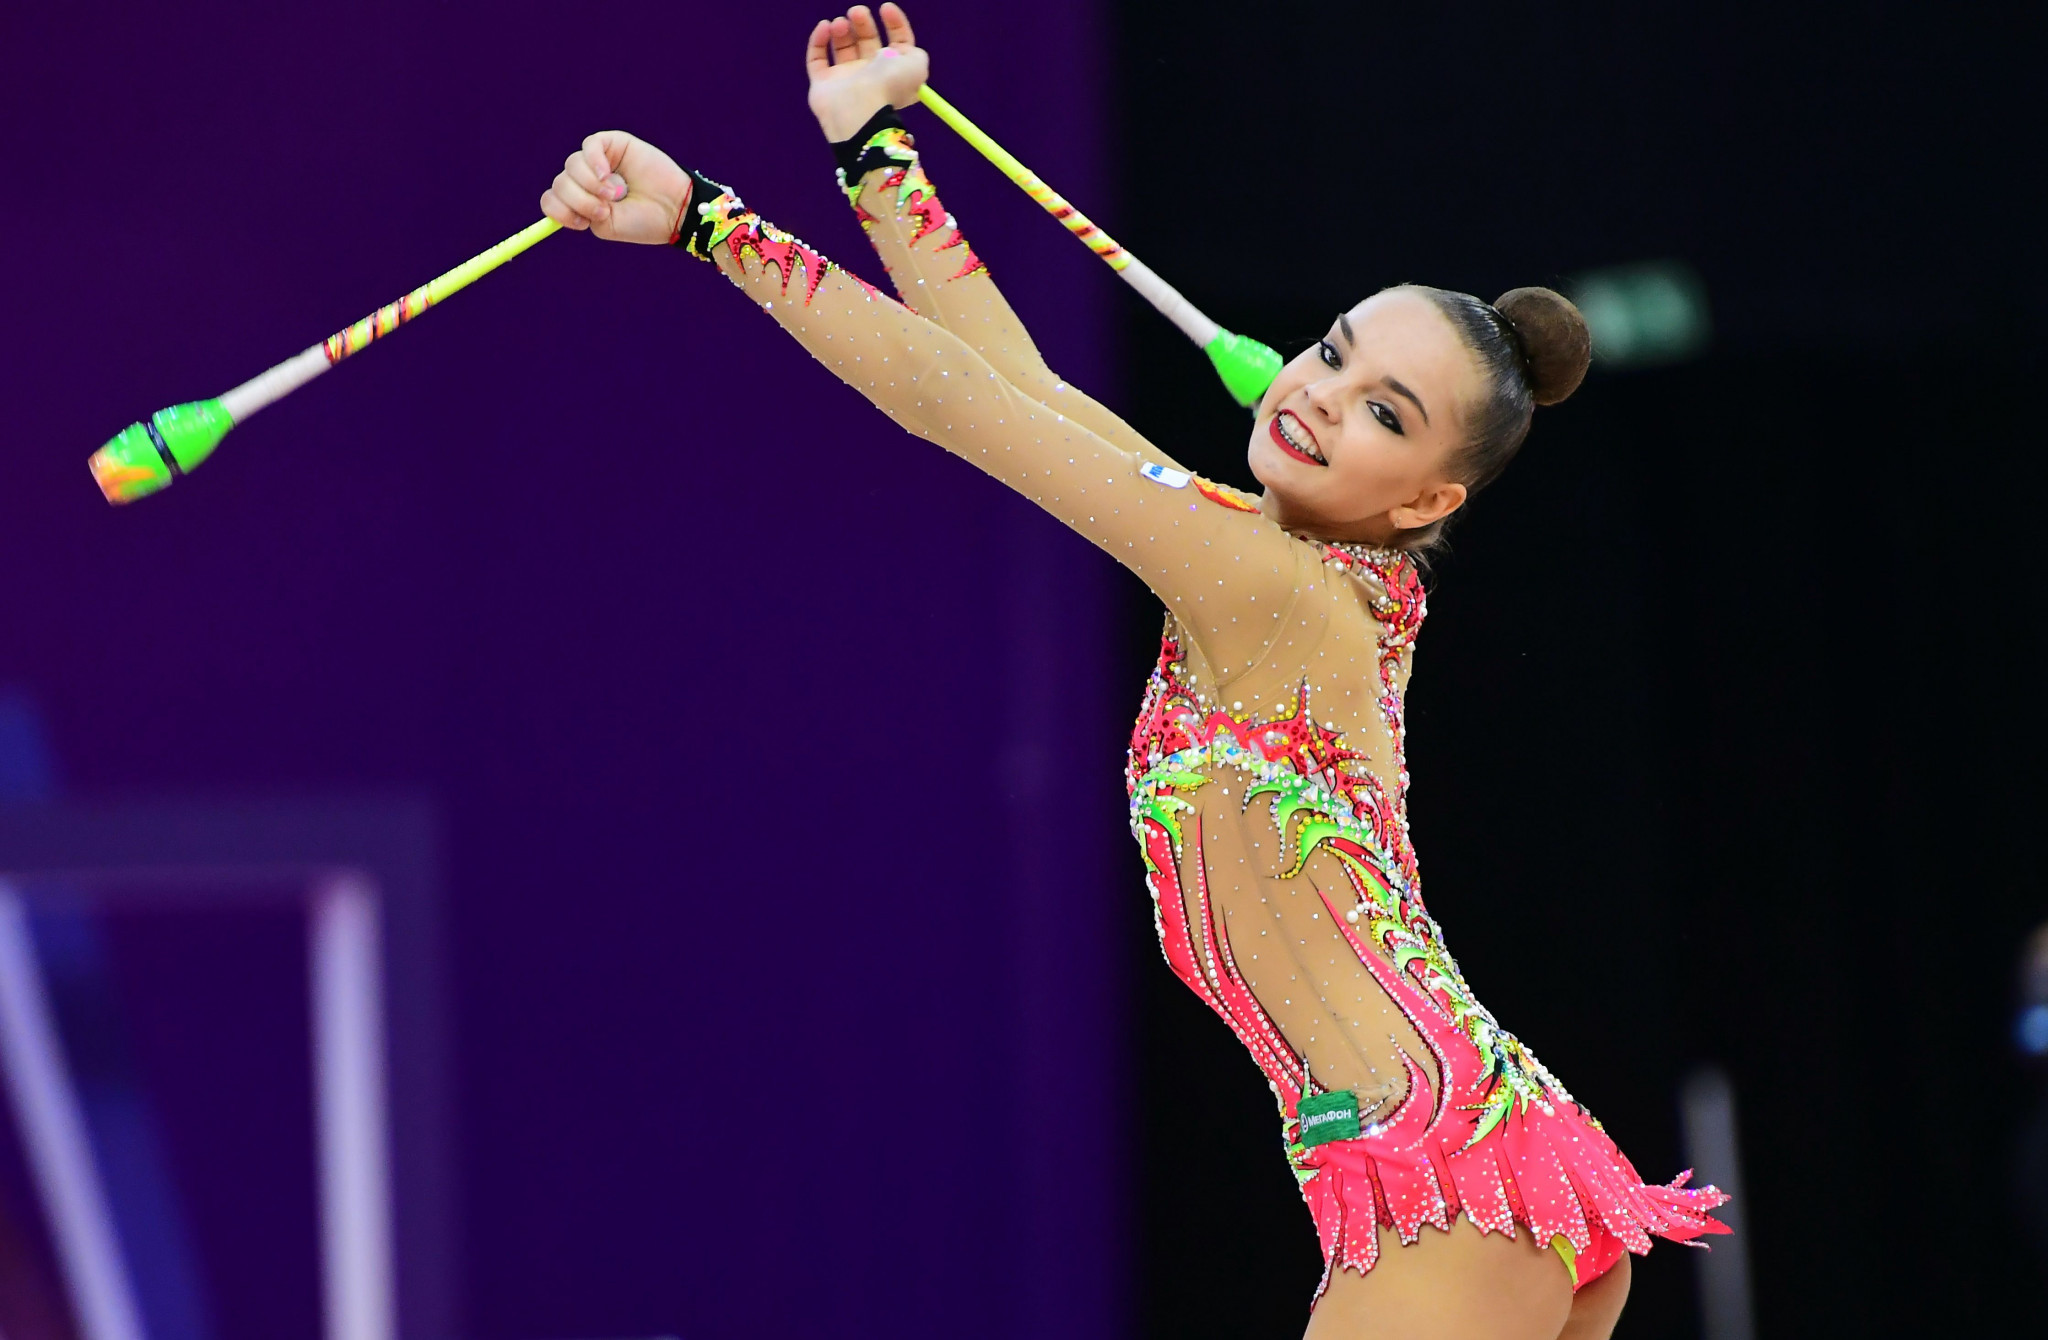 Averina twins dominate FIG Rhythmic World Championships for a second day